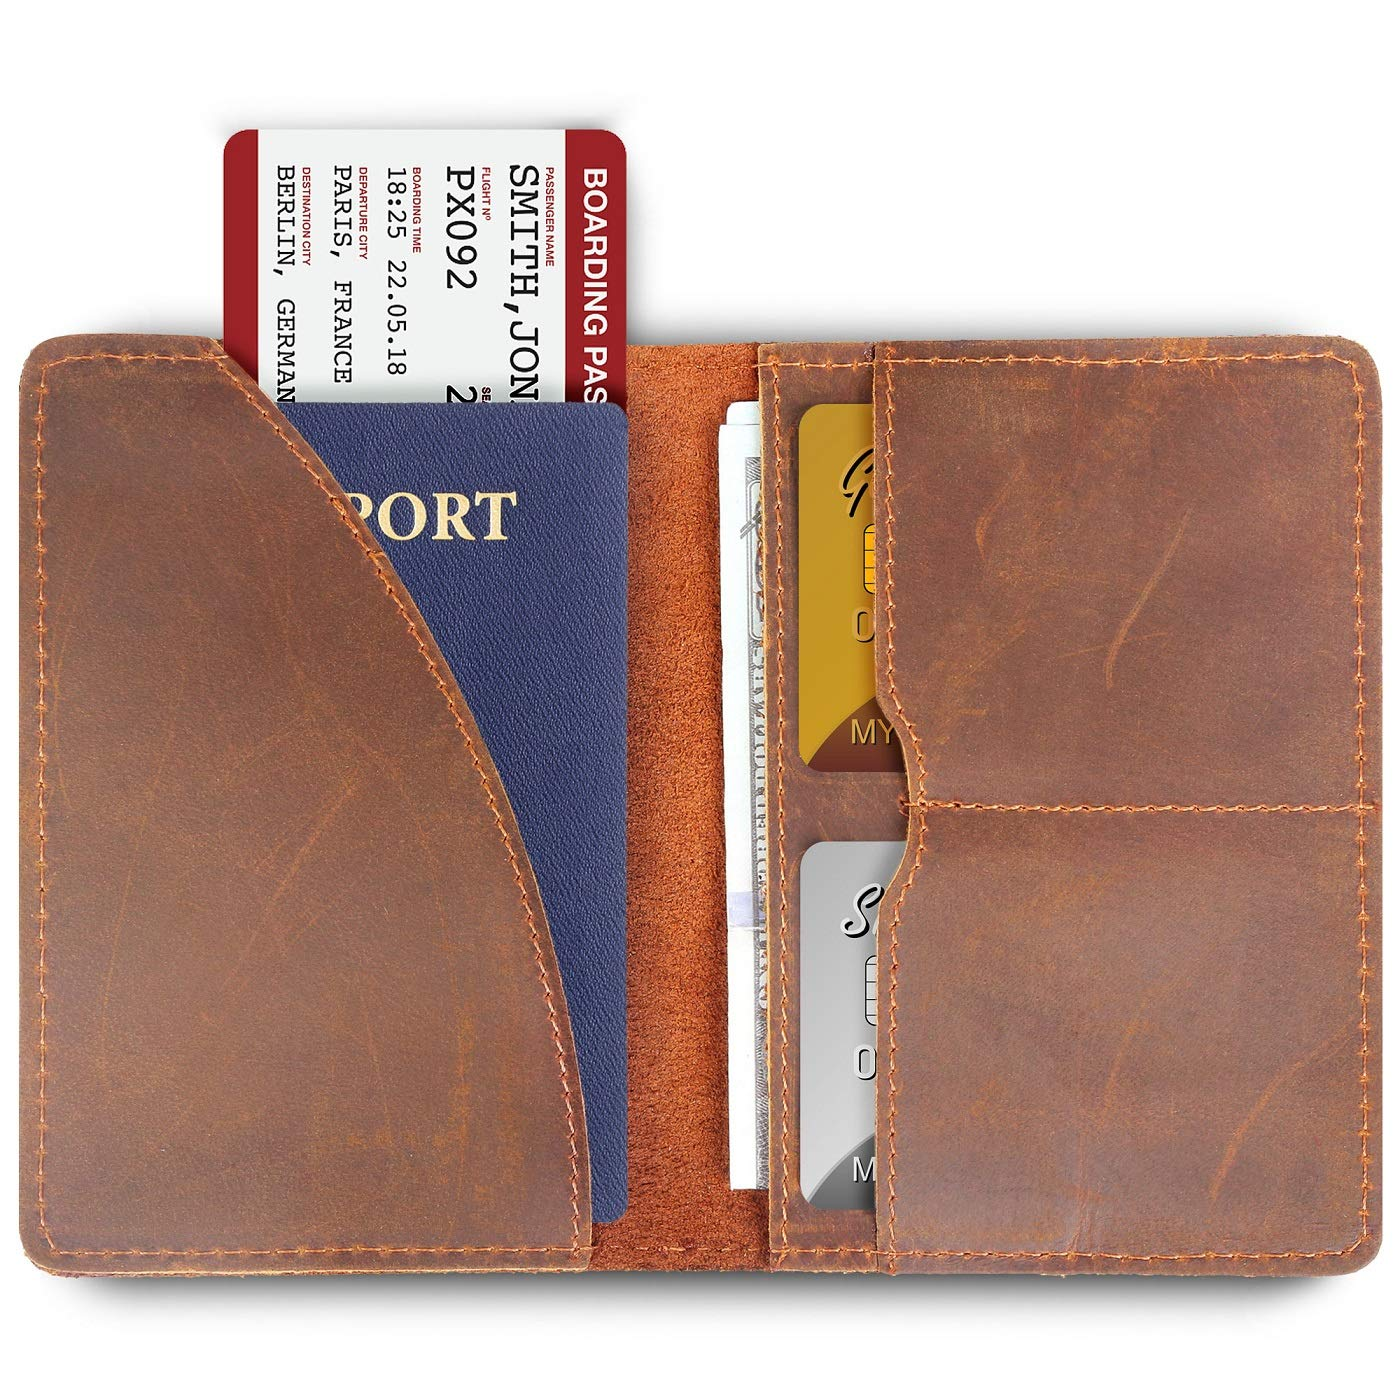 Passport Cover Passport Holder for Men Sleeve Wallet Leather Travel ID Card Case